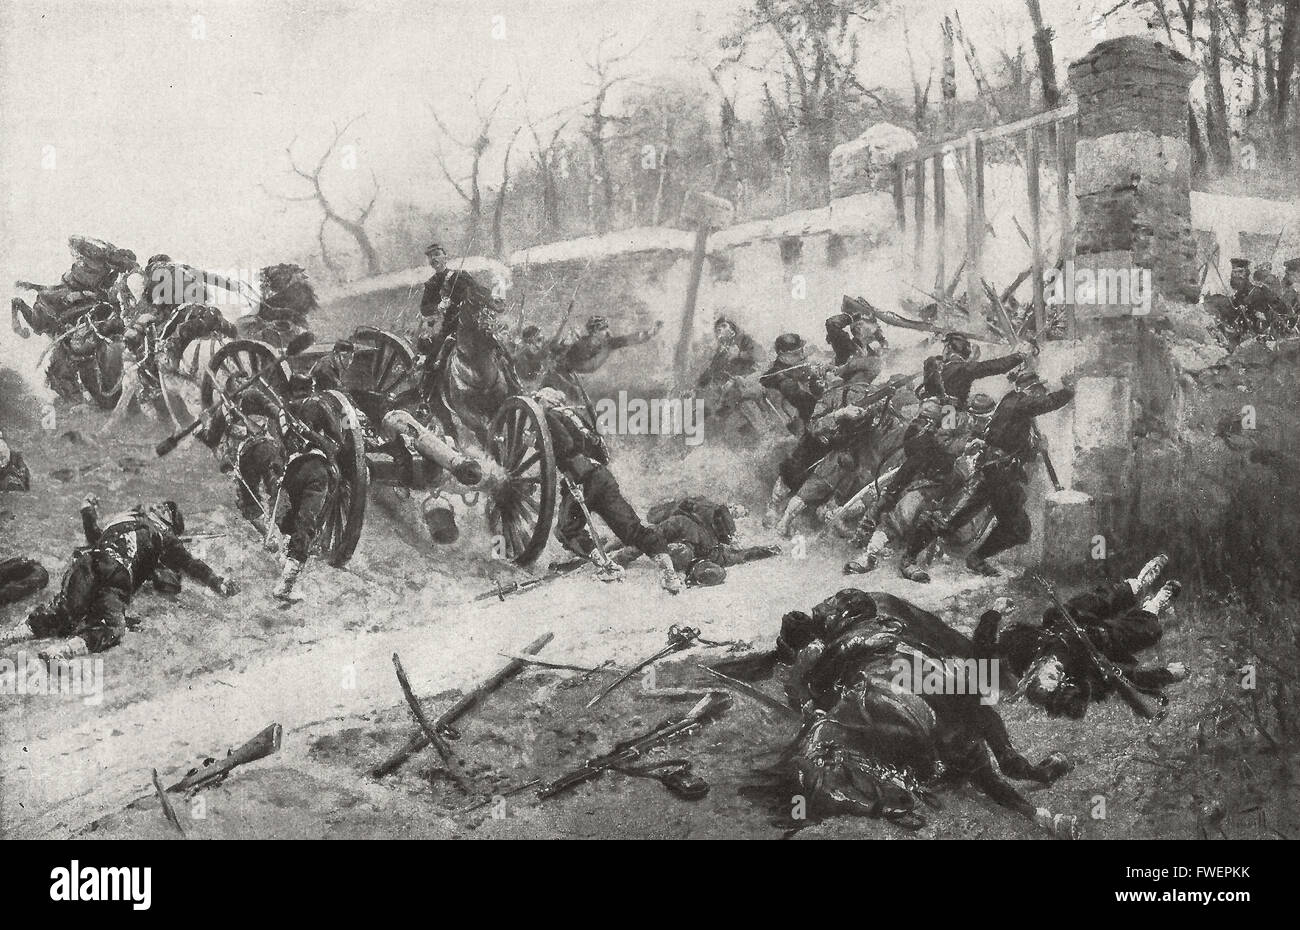 The Defence of the Longboyeau Gate during the Siege of Paris,  Franco - Prussian War, 1870 - 1871. Stock Photo